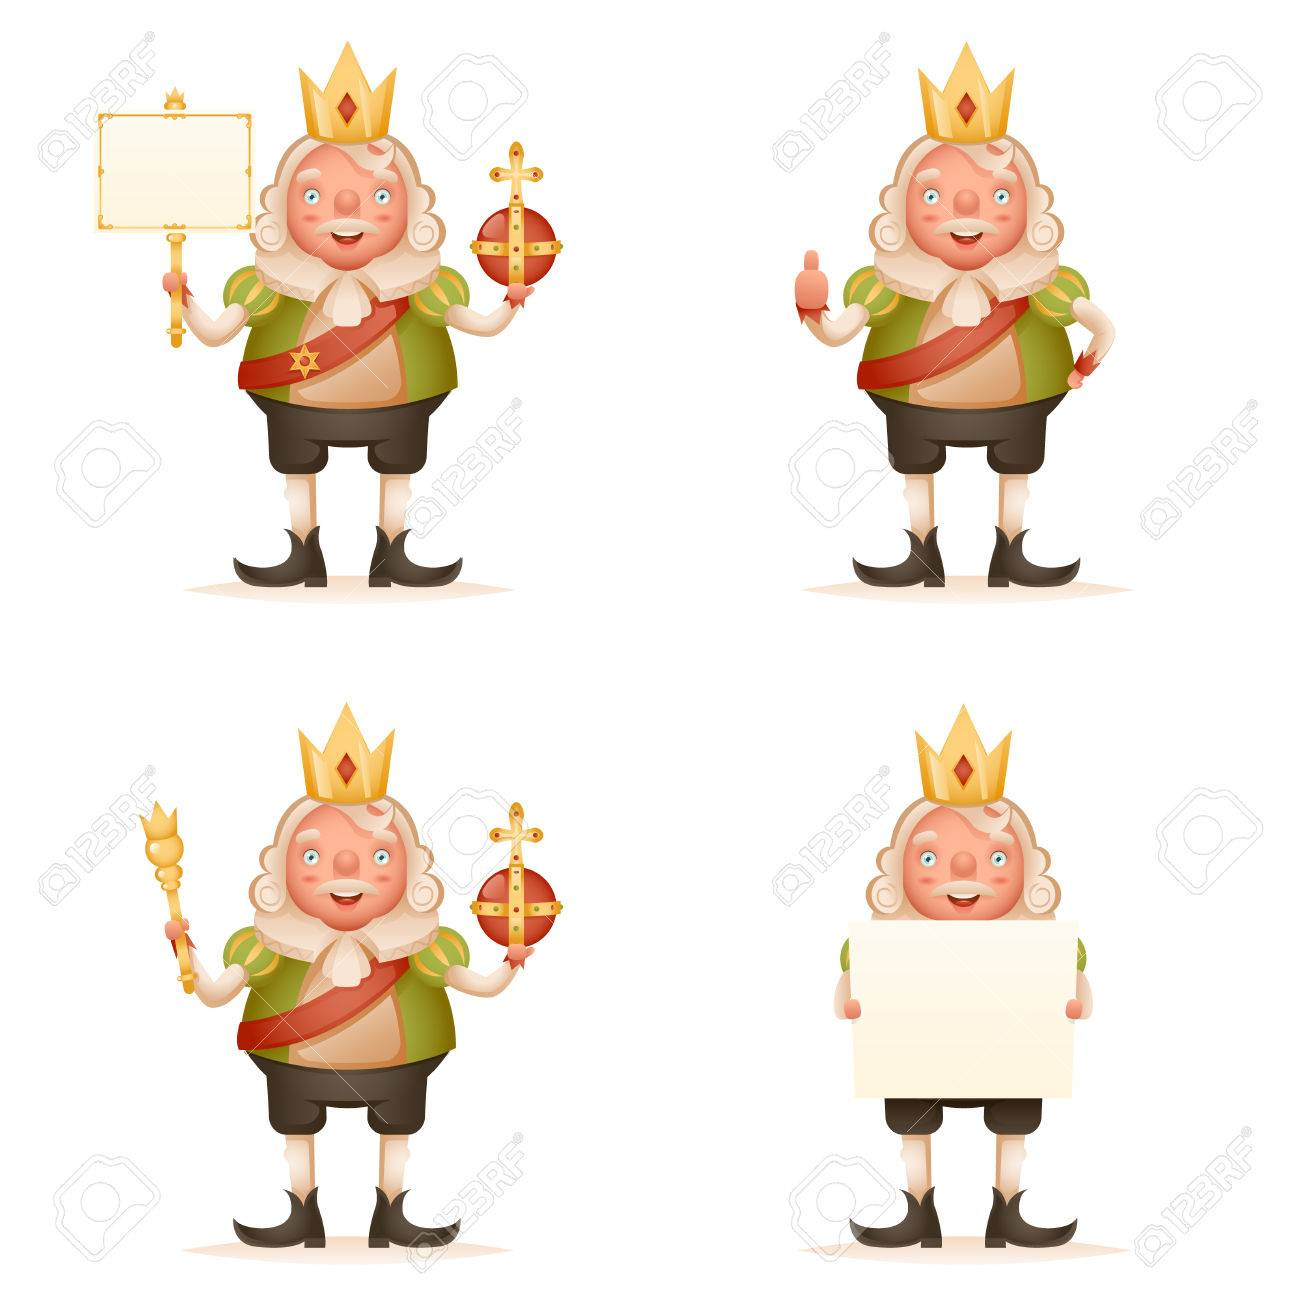 King Cute Cheerful Ruler Blank Paper Thumb Up Crown Head Power Royalty Free Cliparts Vectors And Stock Illustration Image 77941643 How to draw head cartoon girl. king cute cheerful ruler blank paper thumb up crown head power